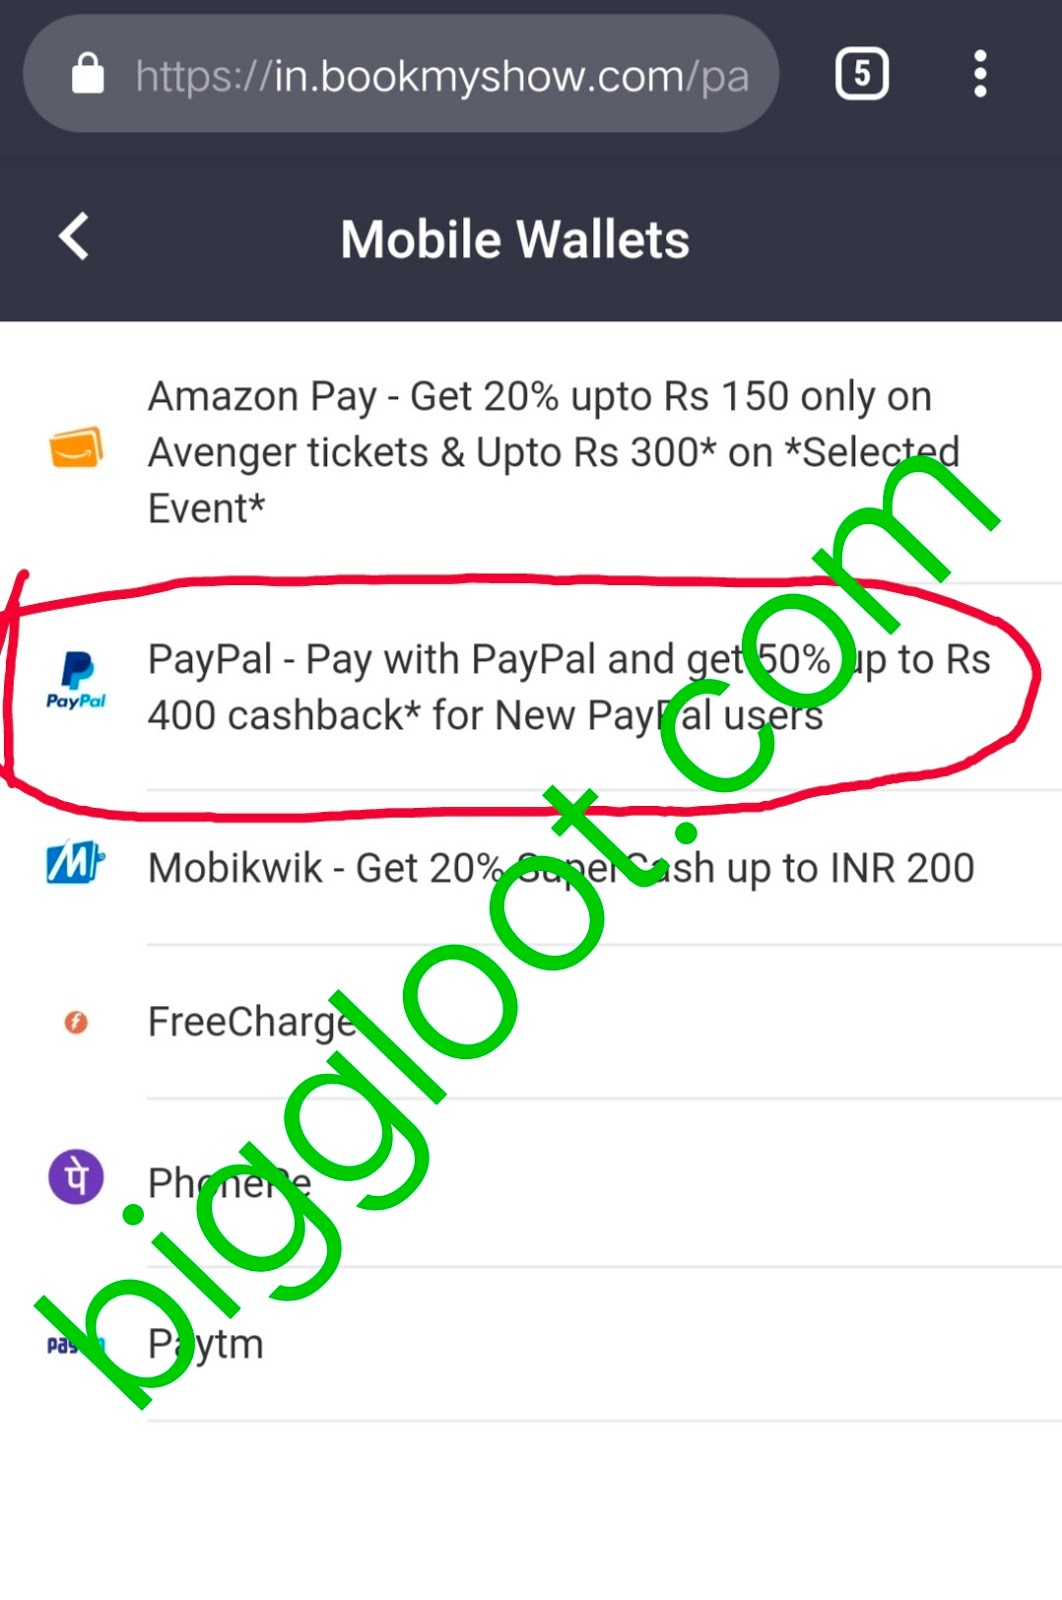 Avengers End Game - Get 50% cashback up to 400 on movie